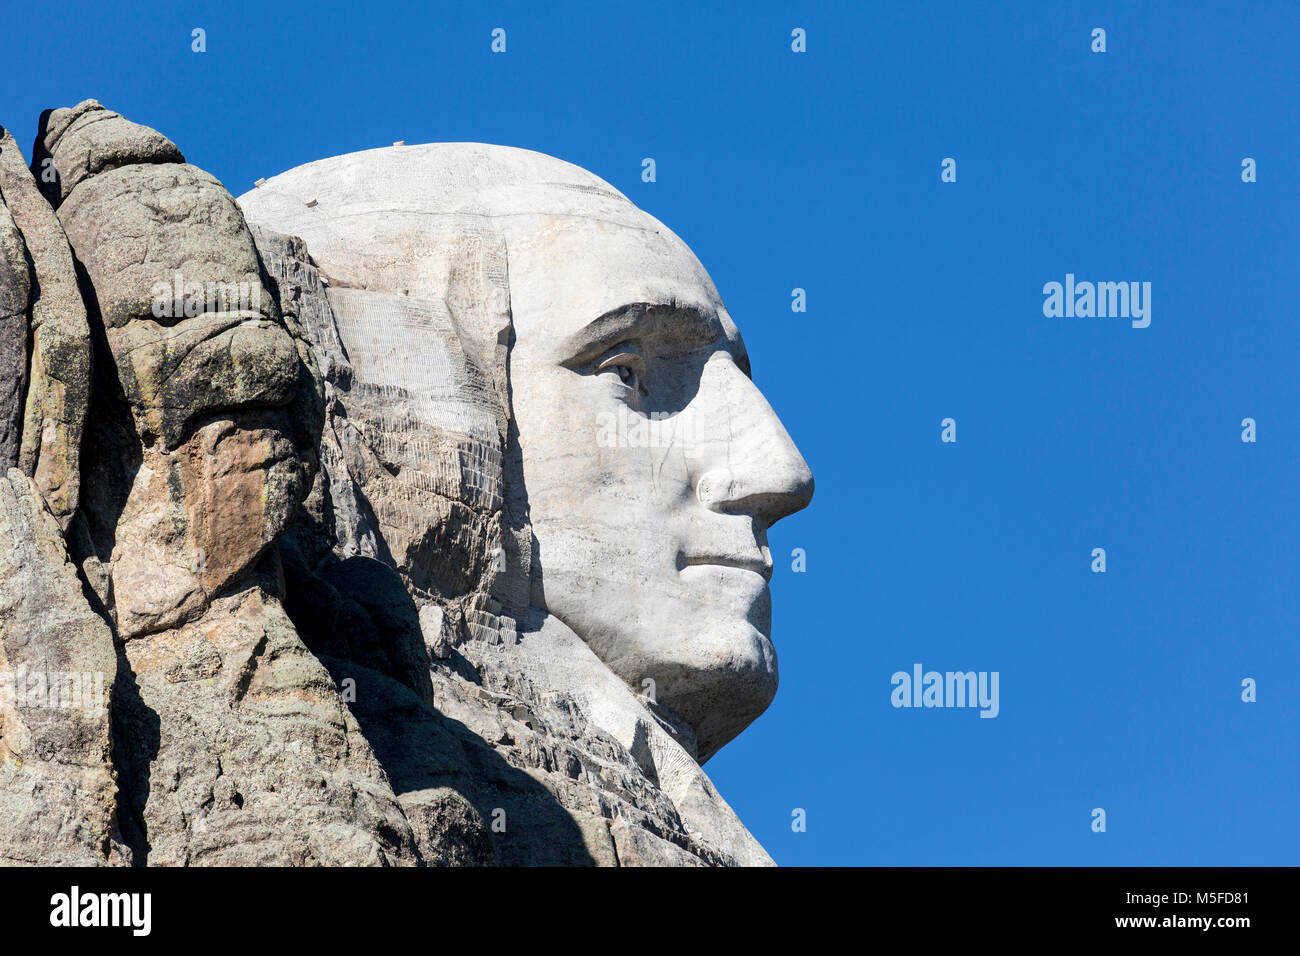 SD00013-00...SOUTH DAKOTA - Presedent George Washington carved into a mountain side at Mount Rushmore National Memorial. - Stock Image